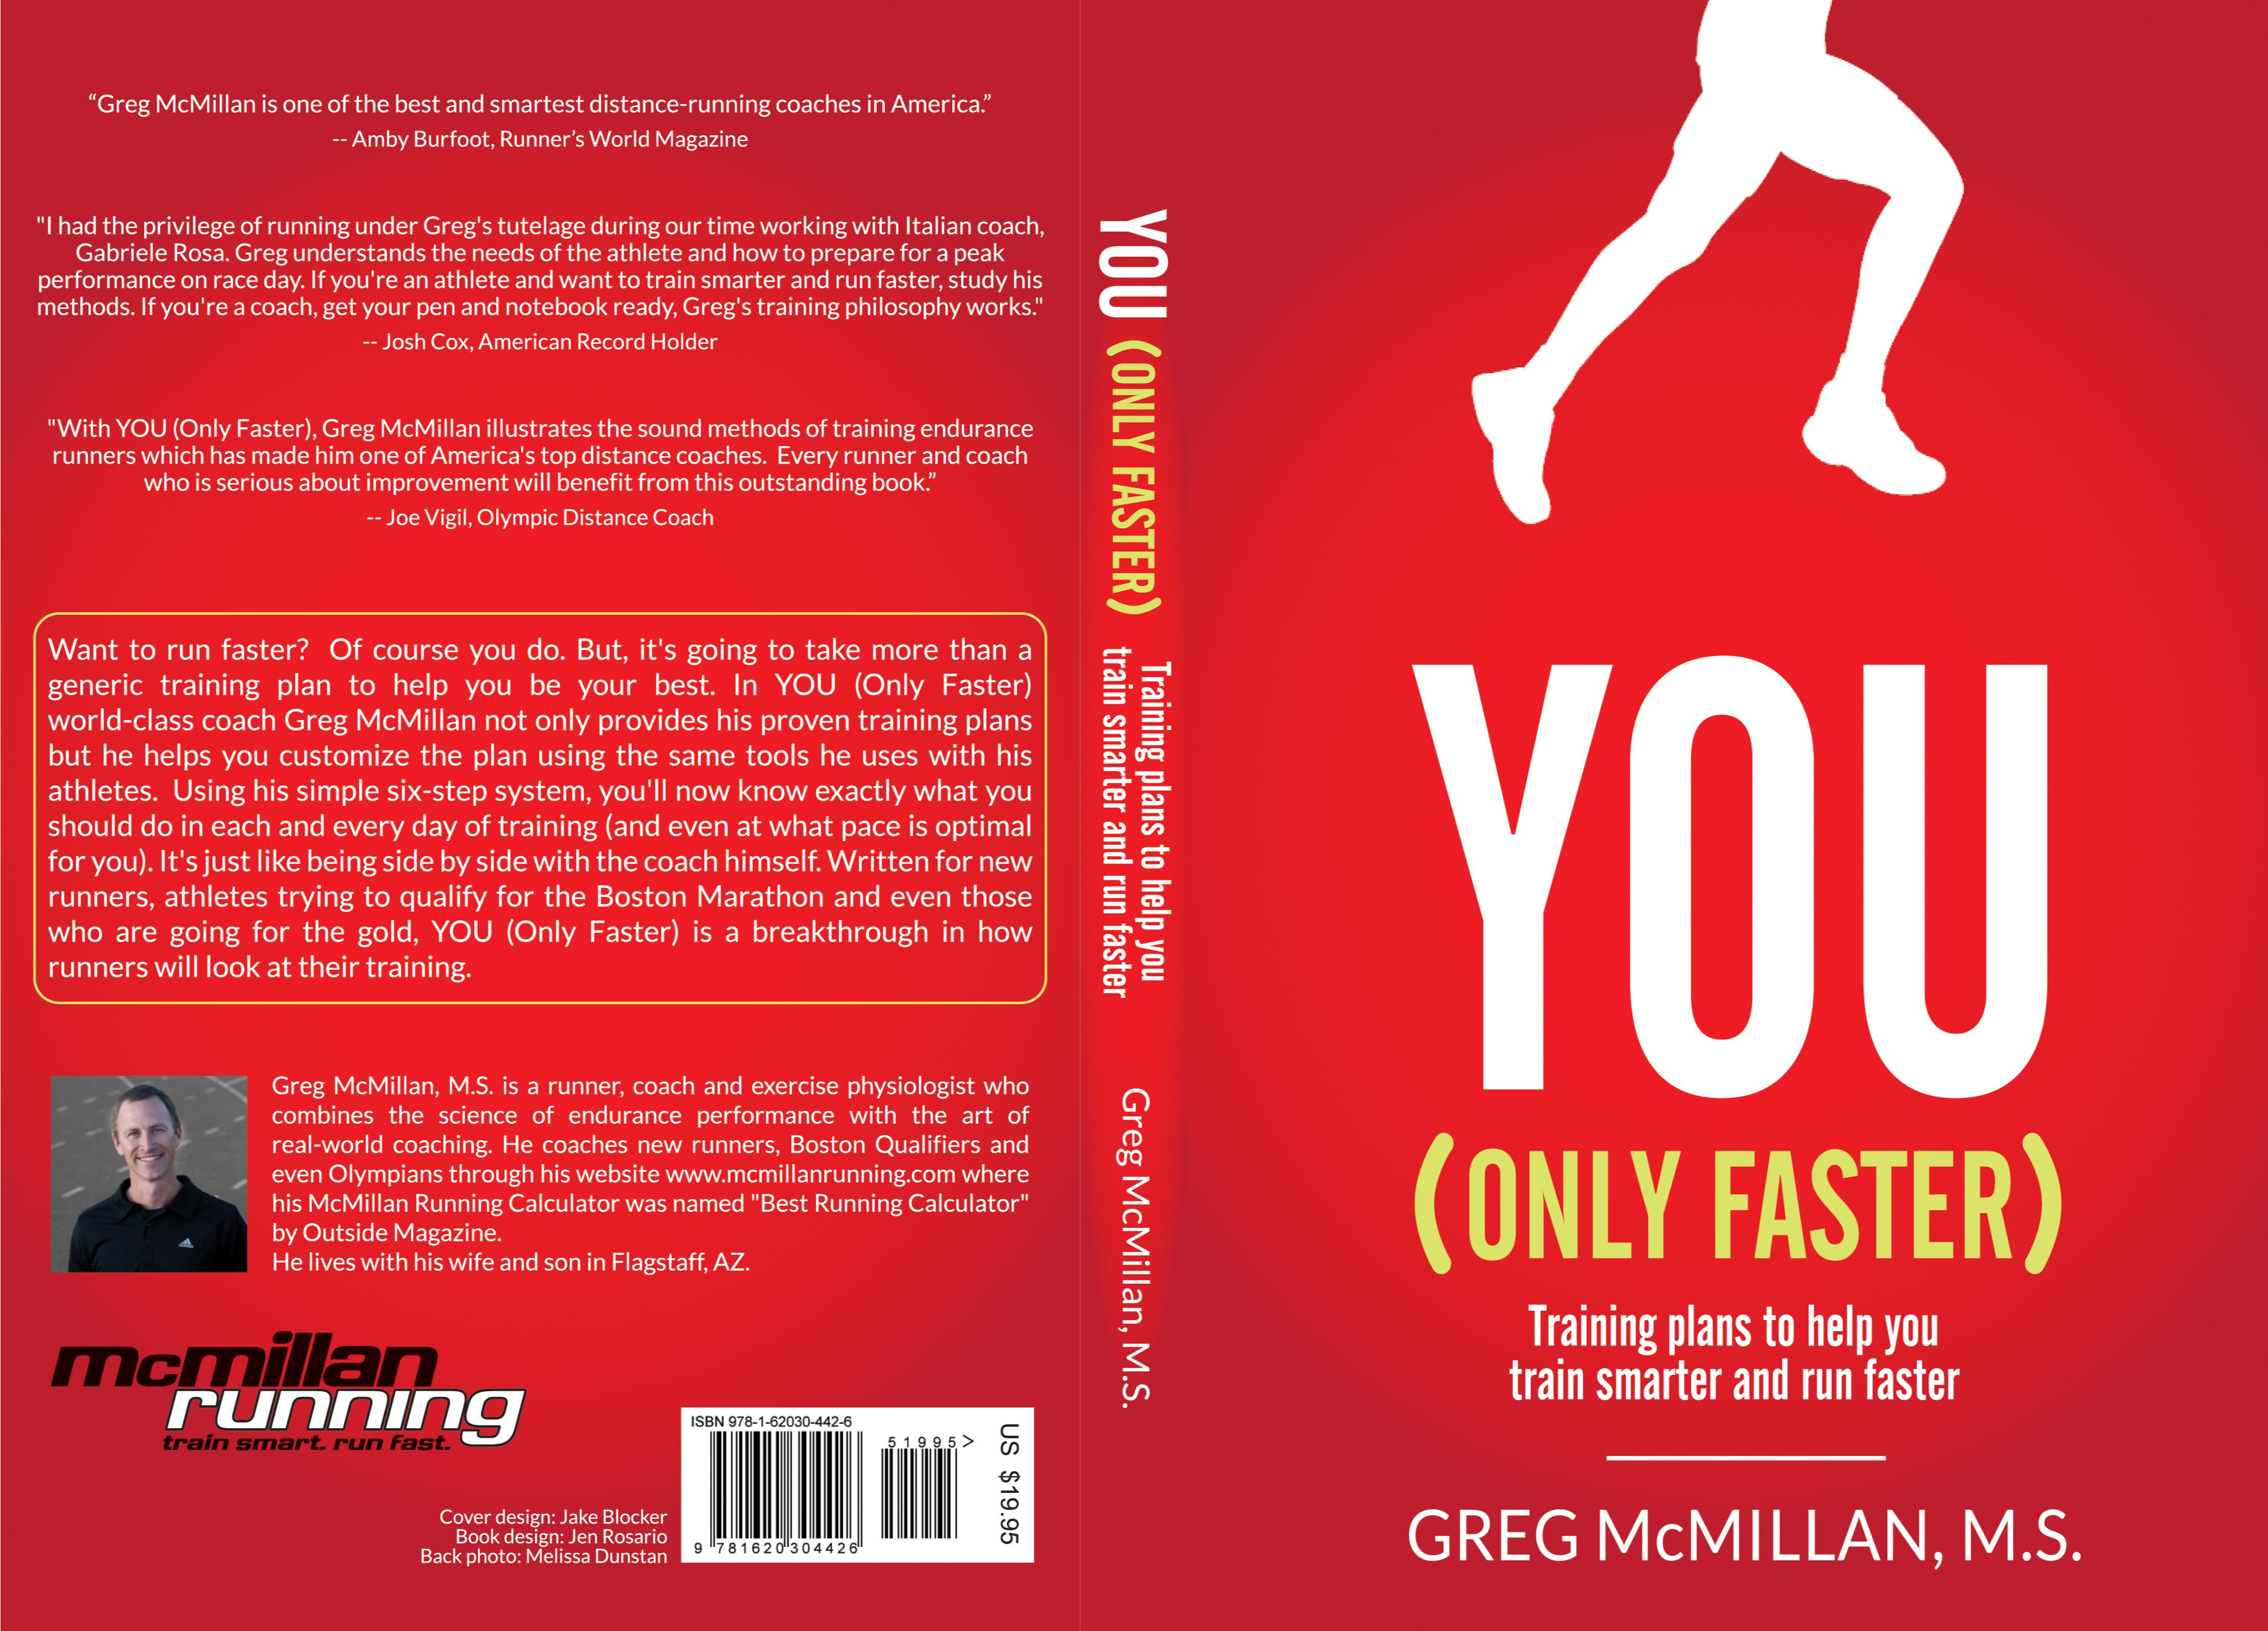 You (Only Faster) cover image